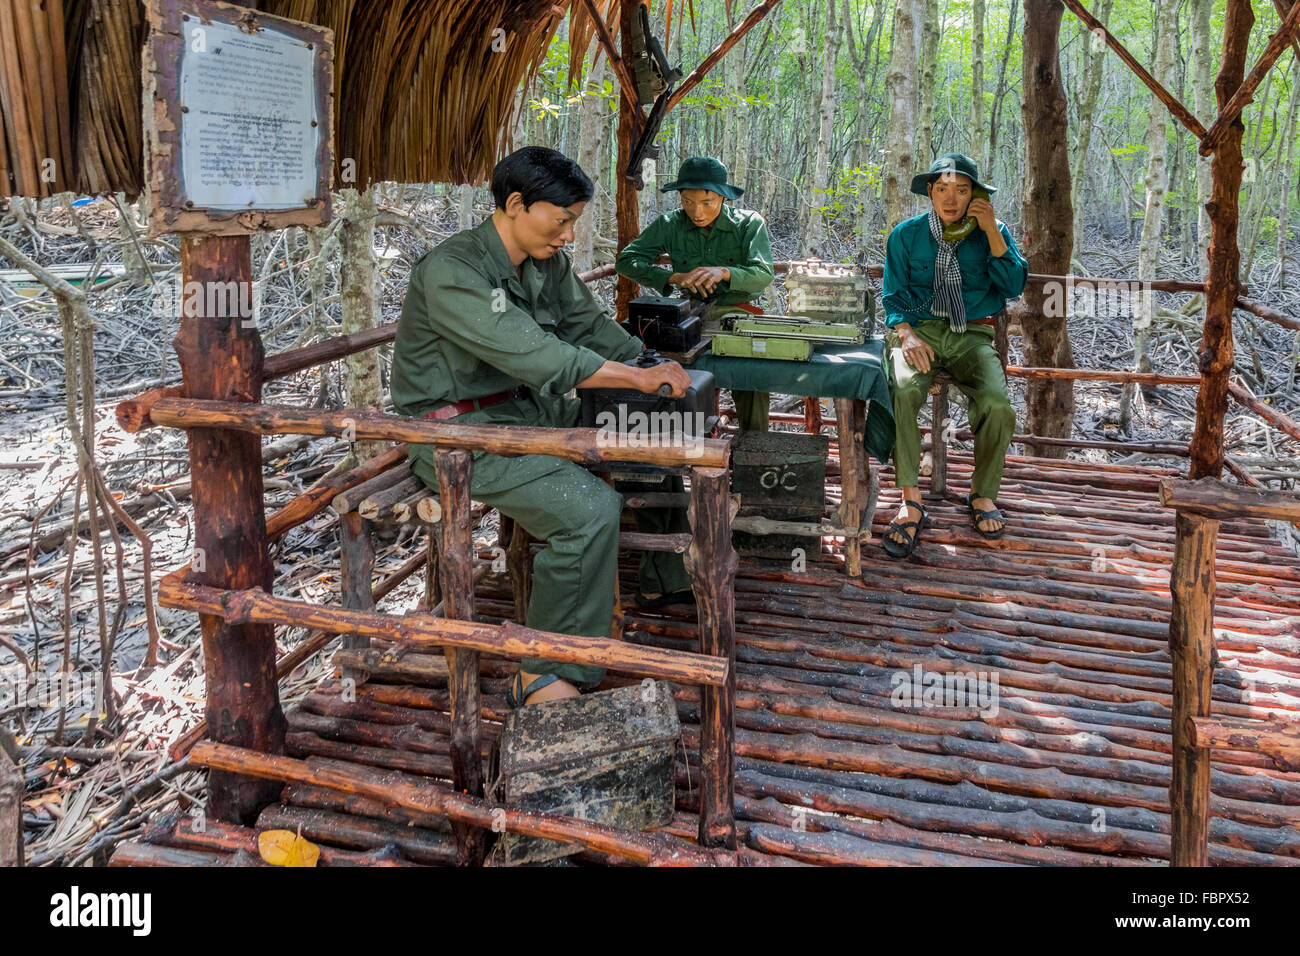 reconstruction of vietcong military base used in vietnam war in the